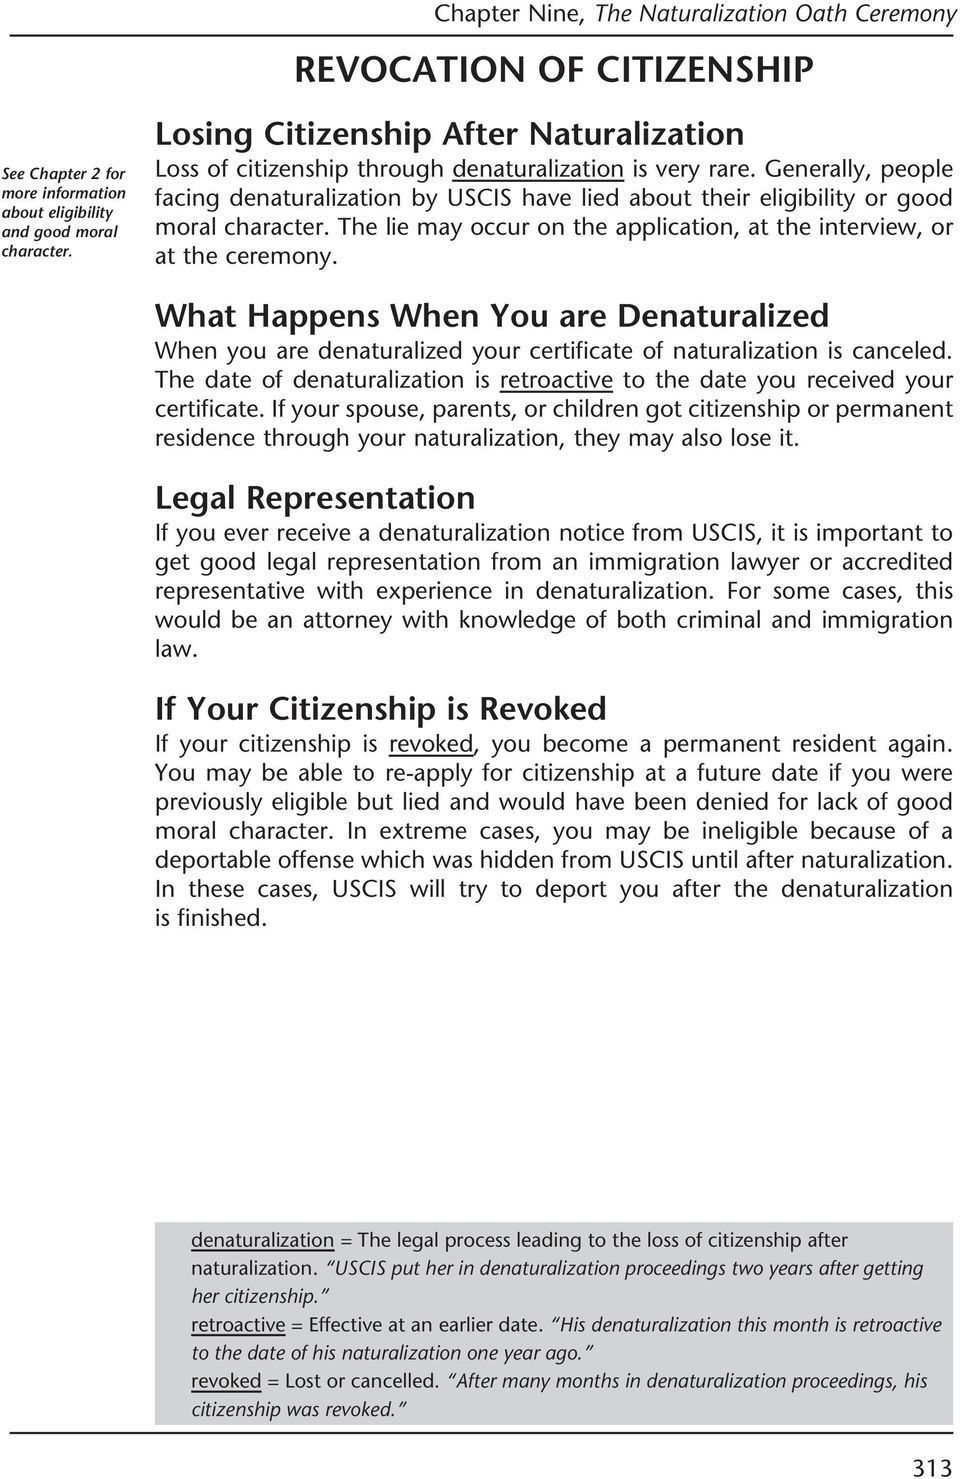 The Naturalization Oath Ceremony - PDF